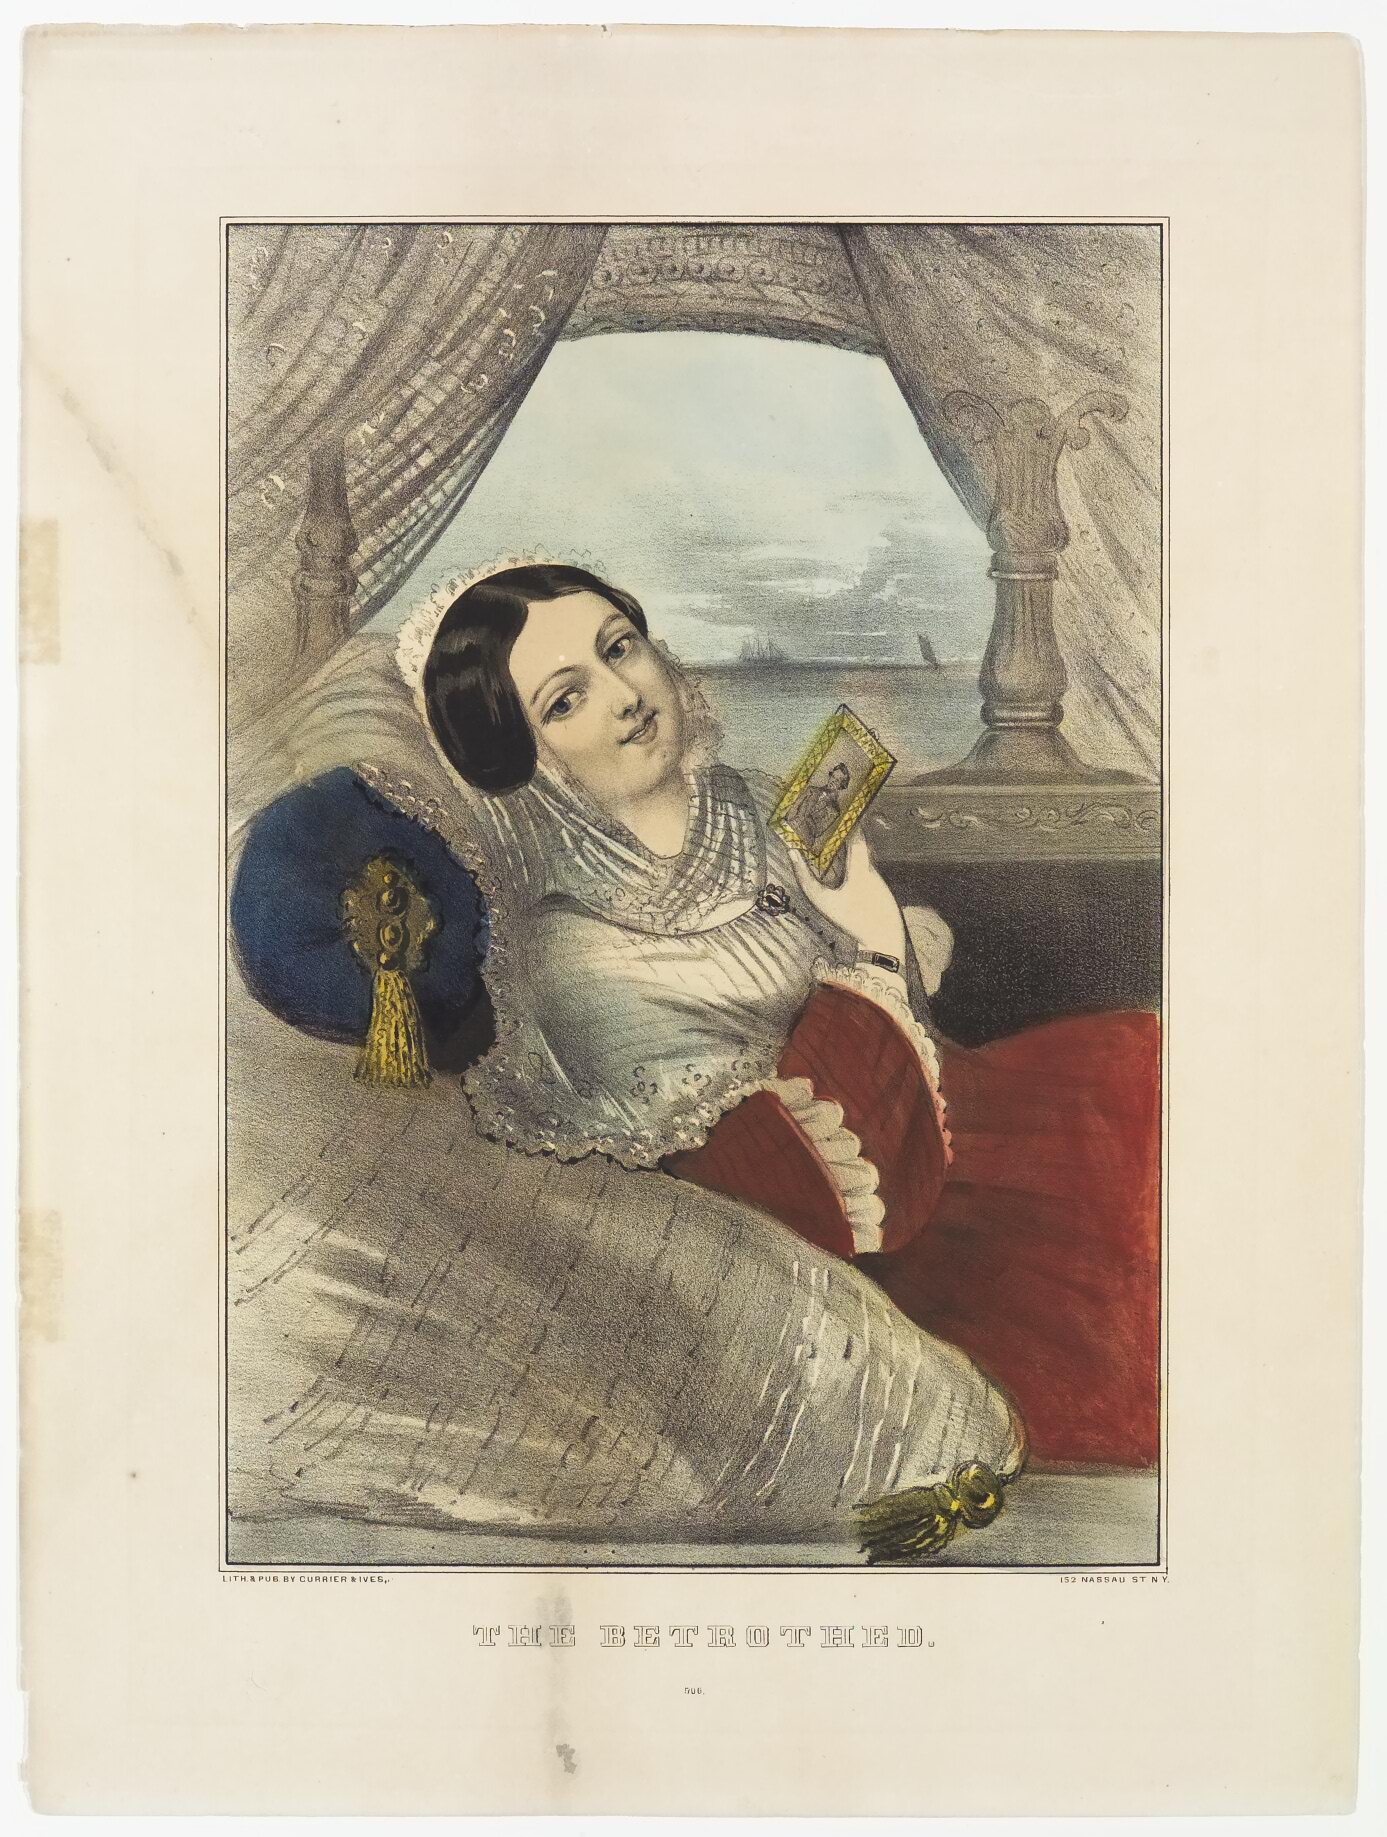 Woman in red dress reclining on pillows (one under her head in blue)